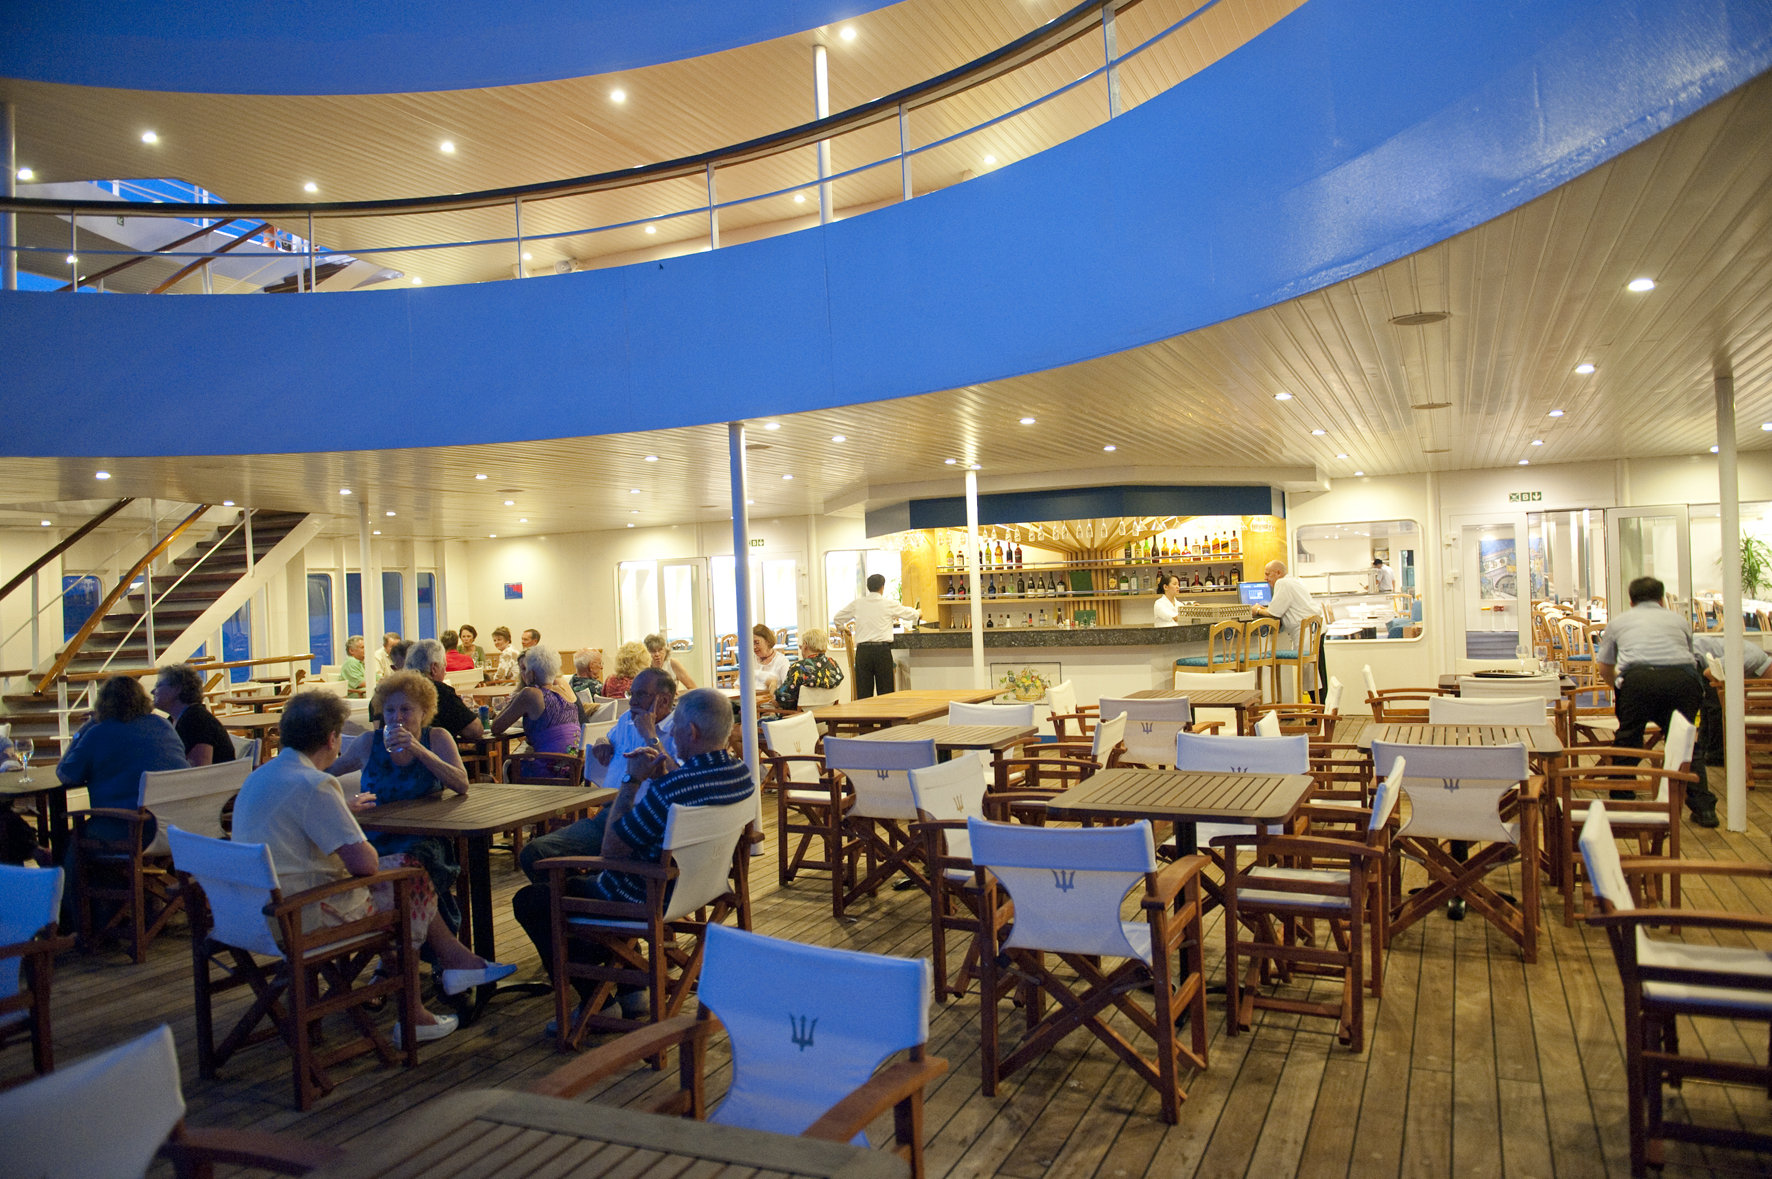 voyages to antiquity aegean odyssey terrage cafe.jpg